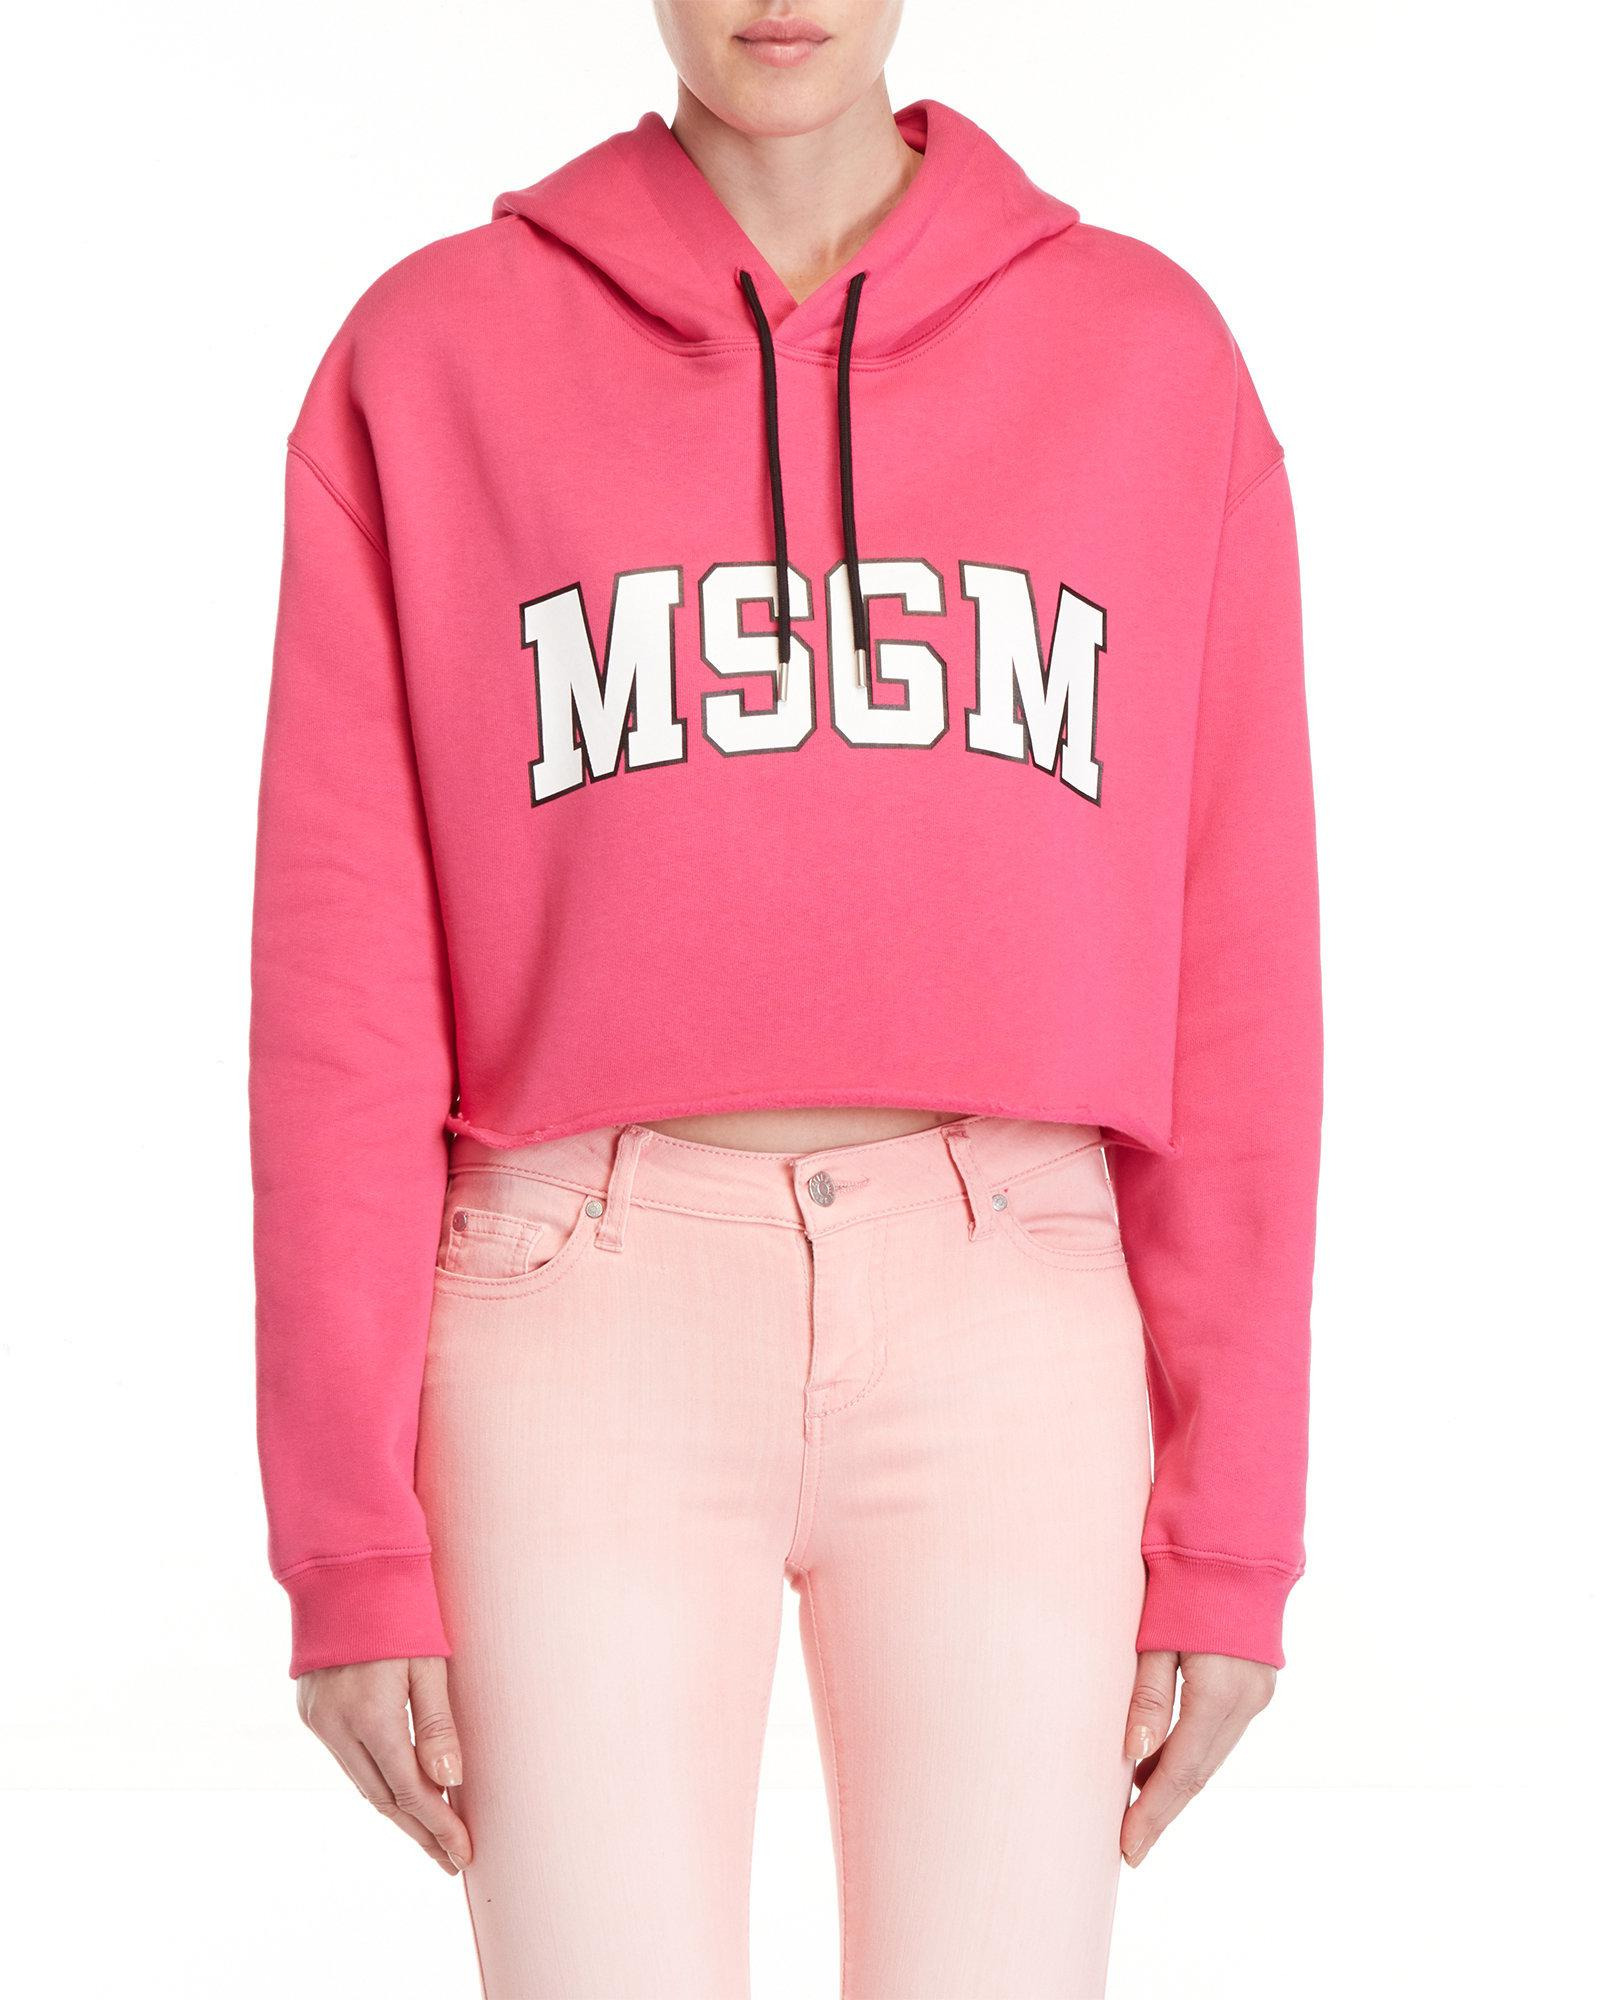 Hoodie Logo Msgm In Lyst Pink Cropped PFtwwq6